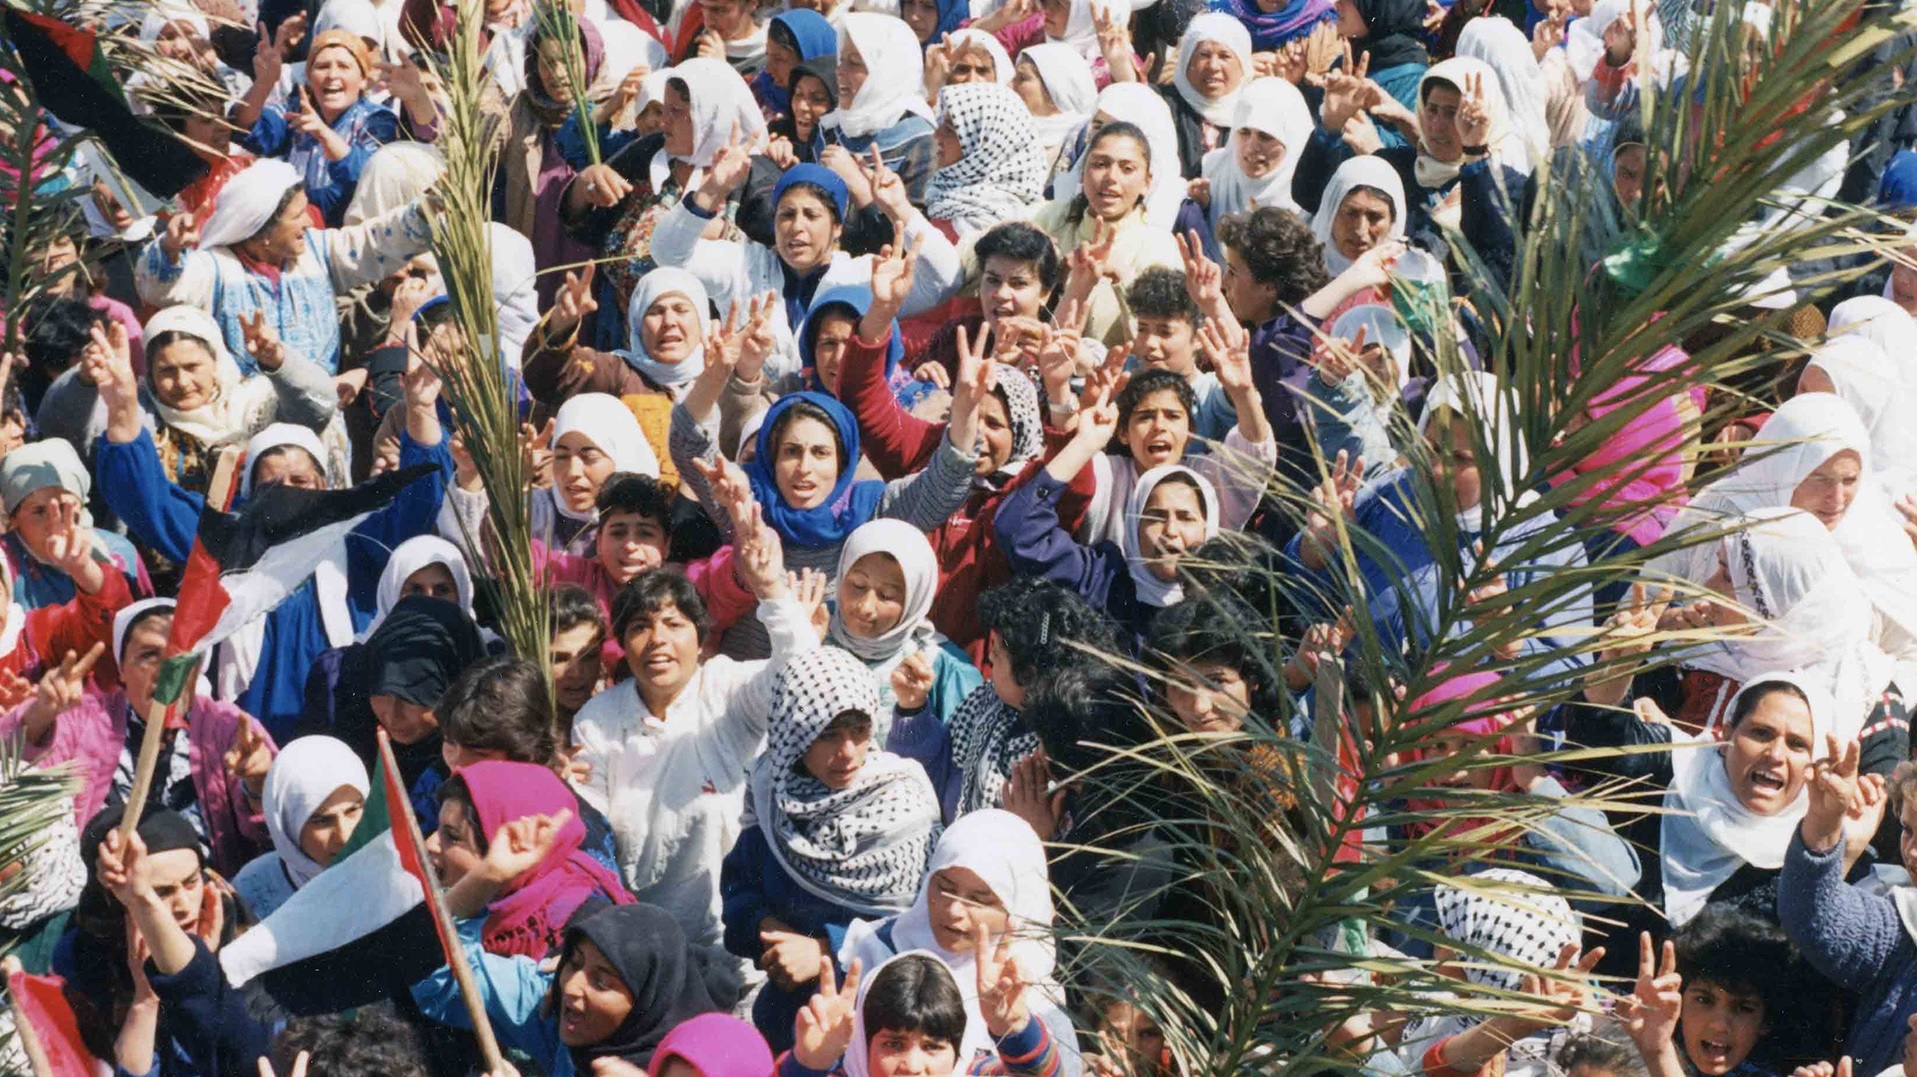 Women in headscarves protest in the Middle East in a photo from Women, War & Peace